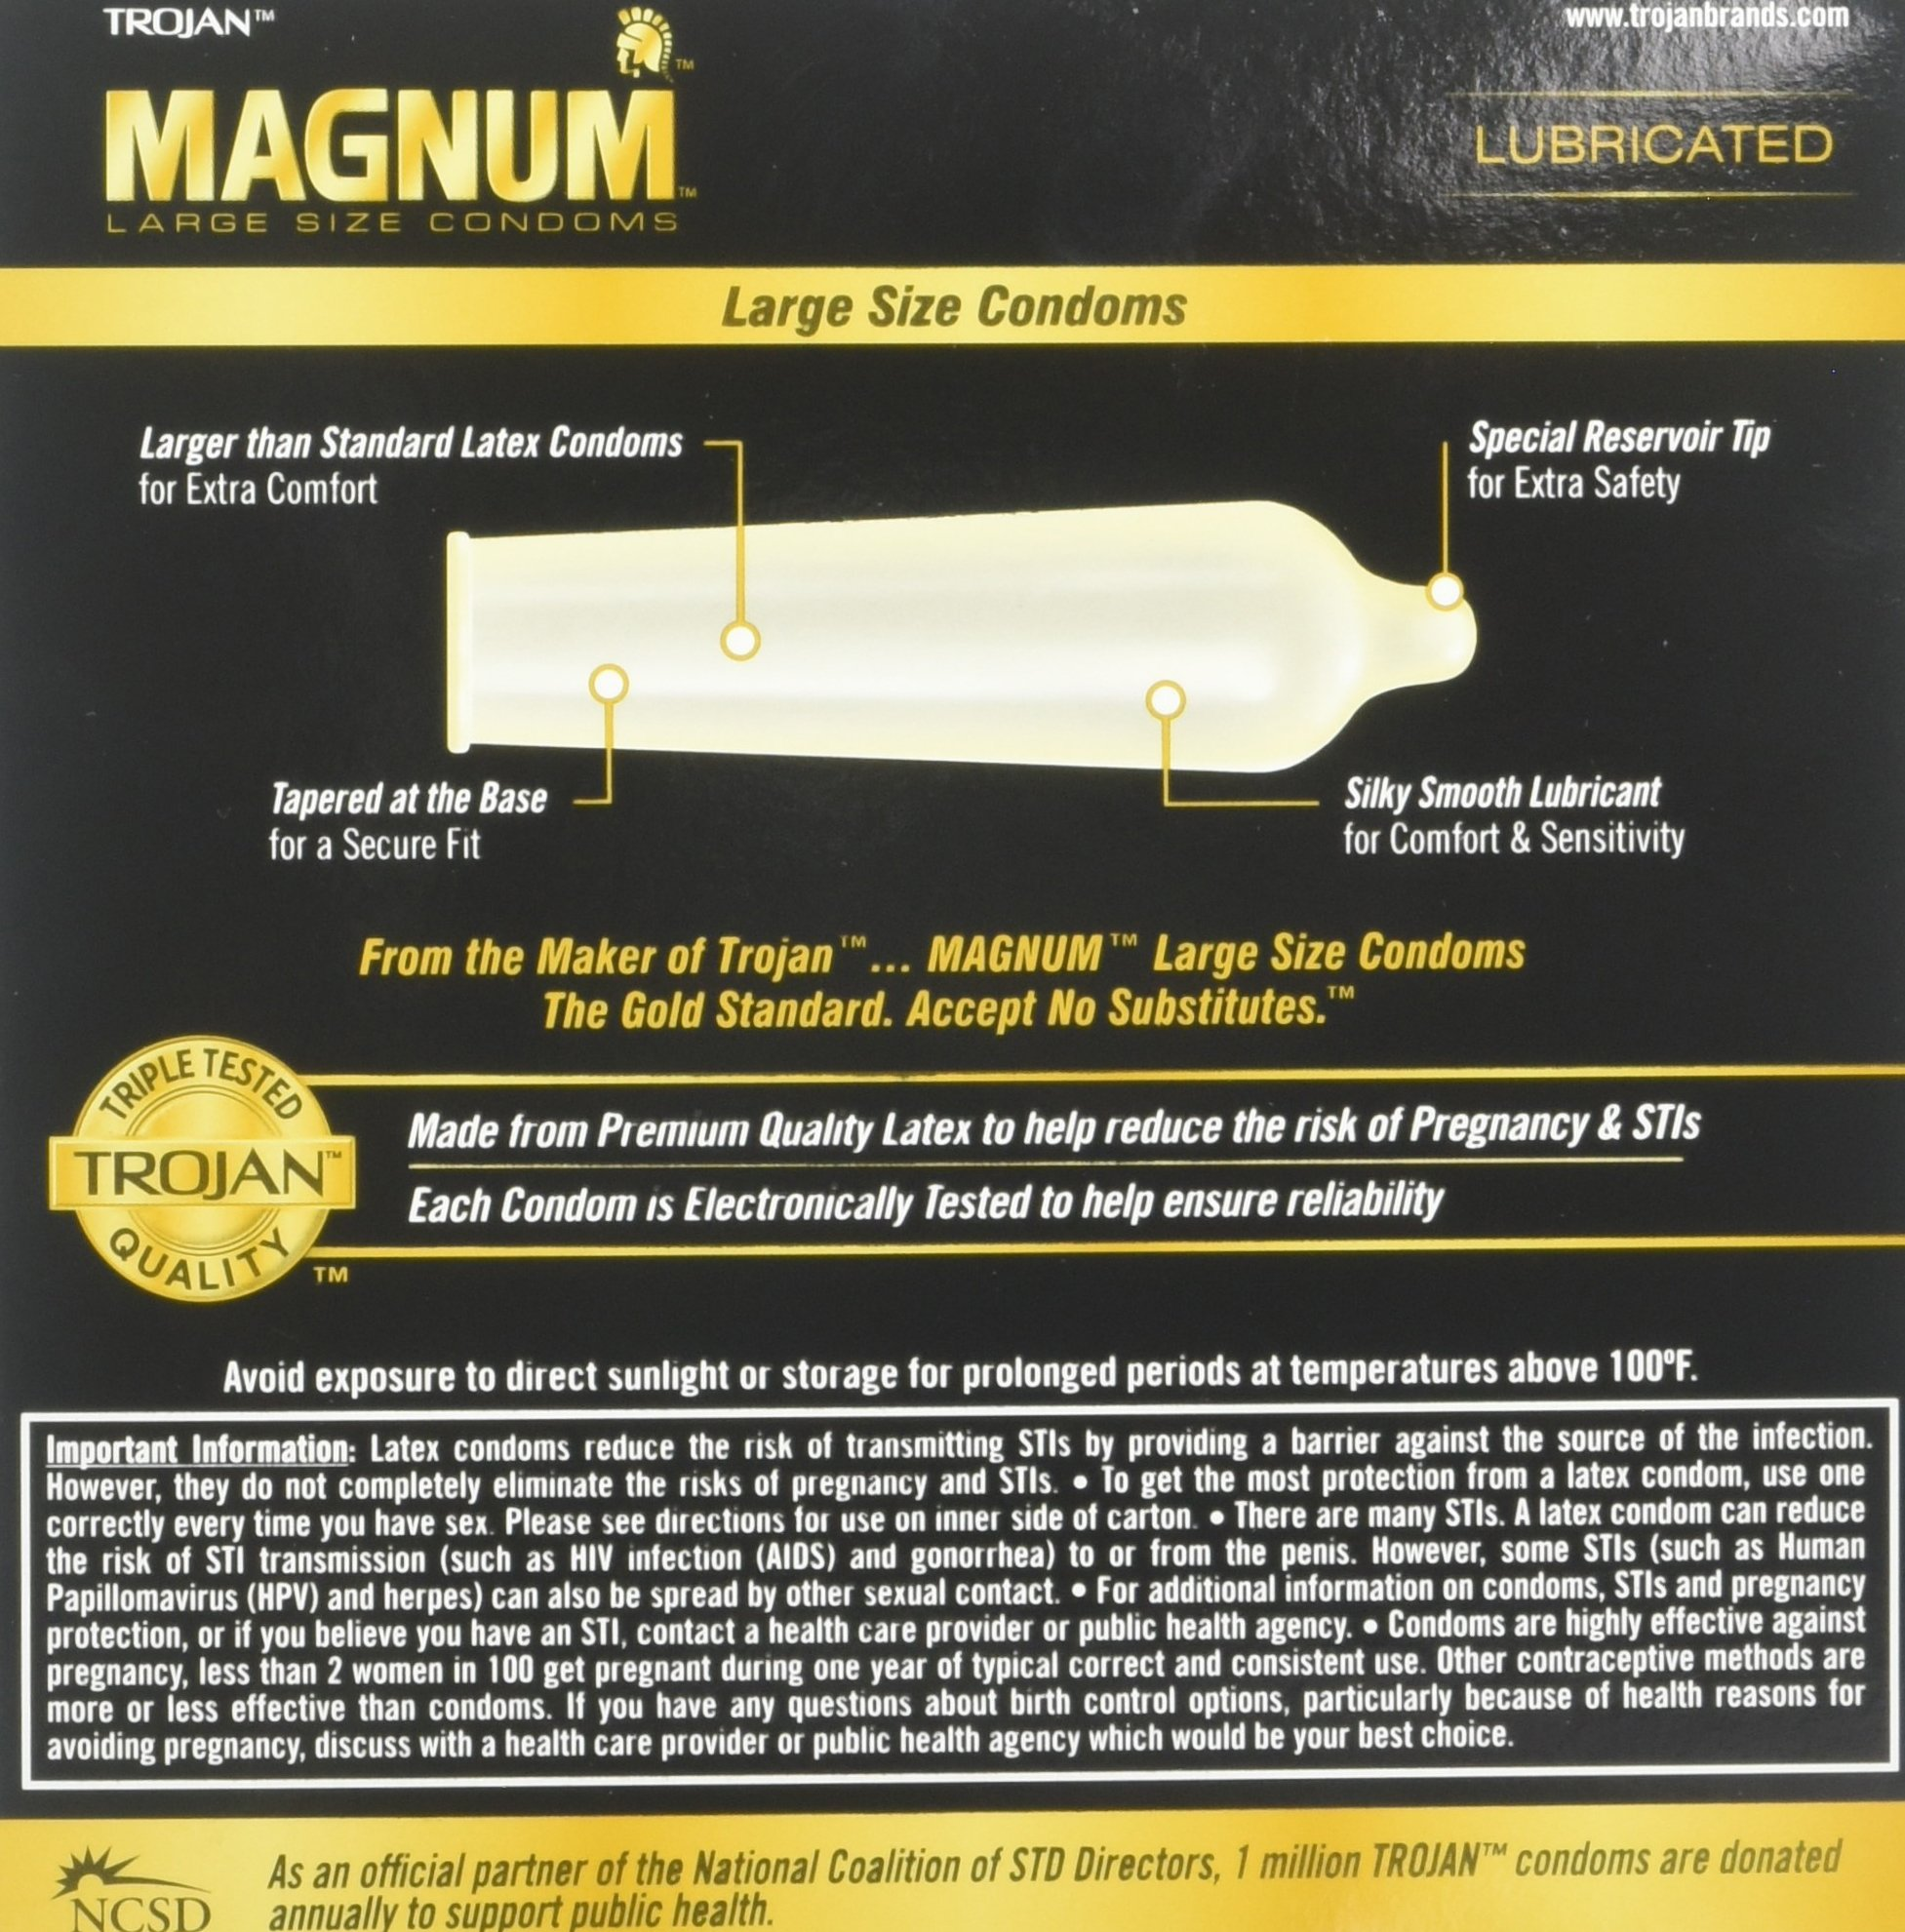 TROJAN Magnum Lubricated Latex Large Size Condoms, 36 ea by Trojan (Image #2)